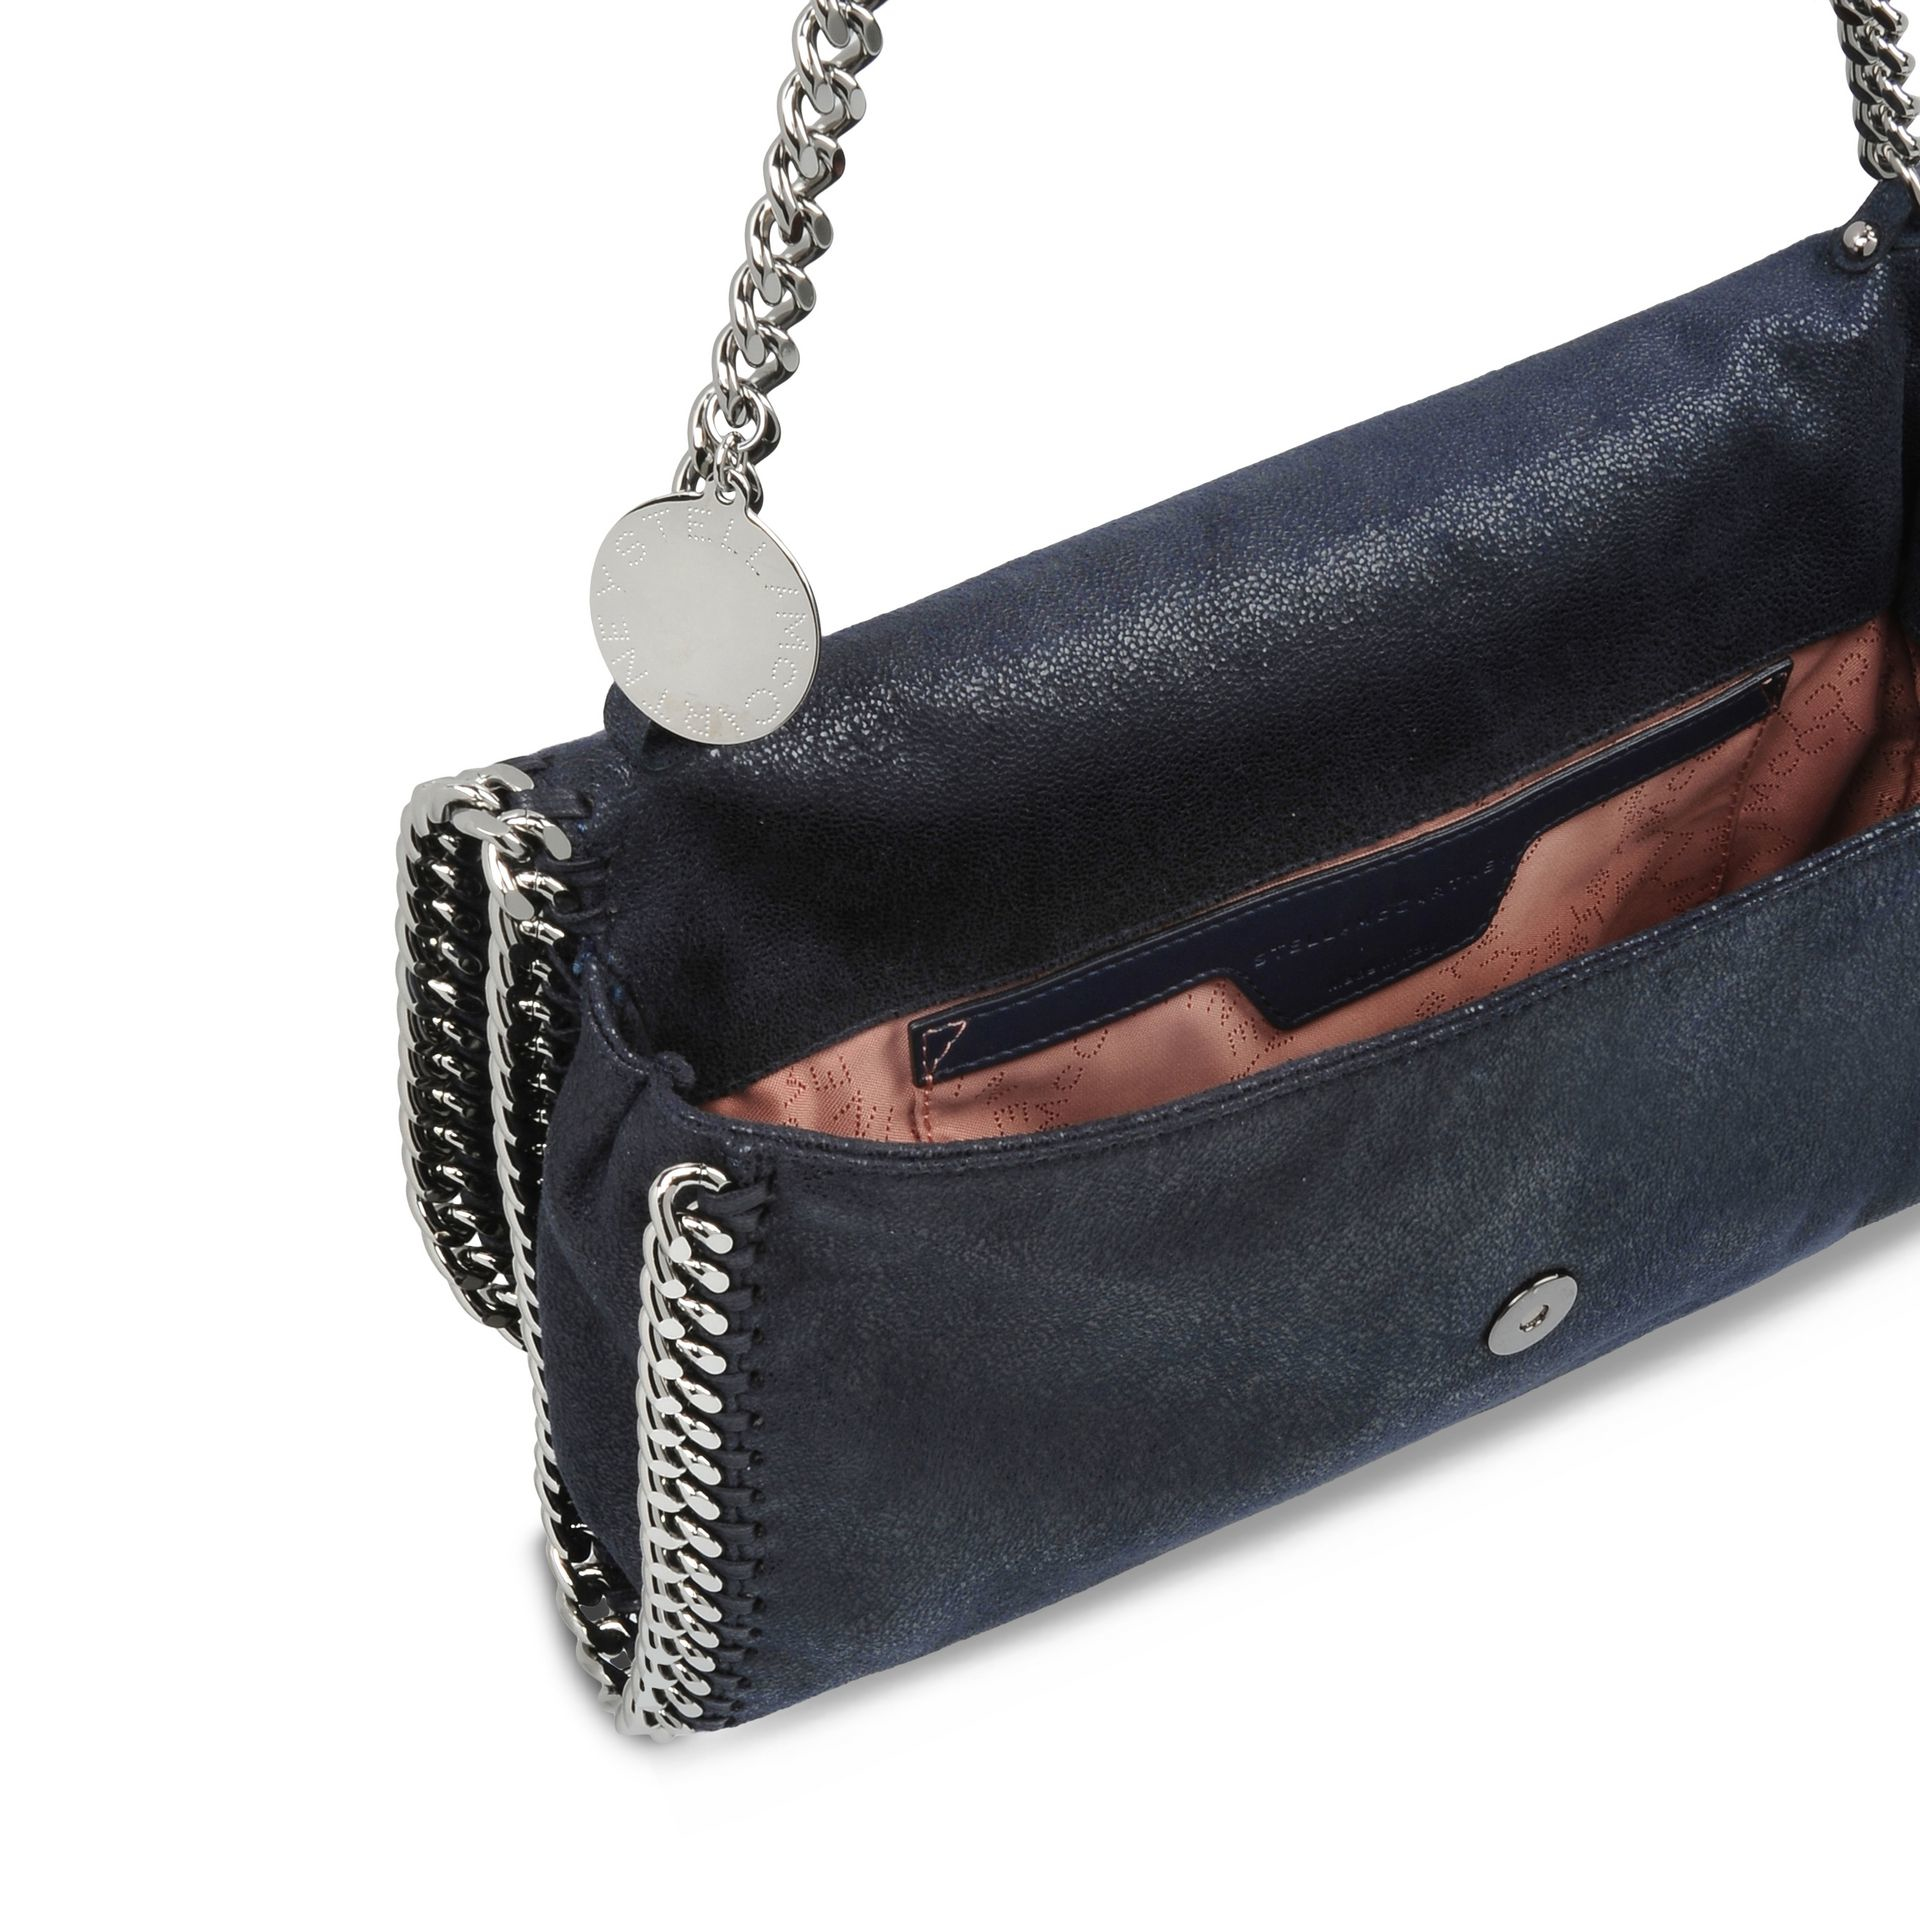 Stella McCartney Navy Falabella Shaggy Deer Shoulder Bag in Blue - Lyst 3b2d38e7be